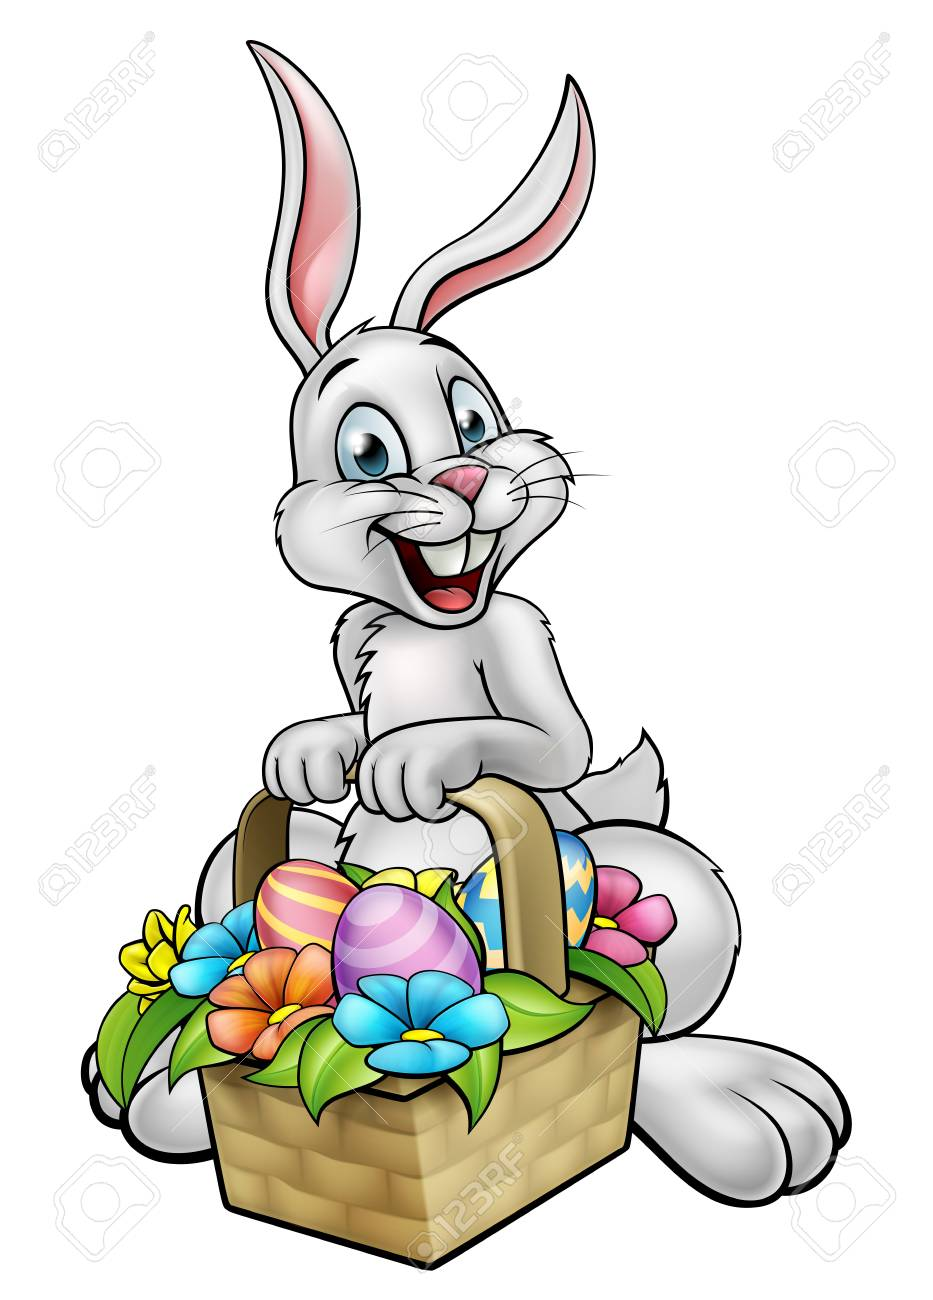 933x1300 Picturesque Design Free Clipart Easter Egg Hunt Boy On Clip Art